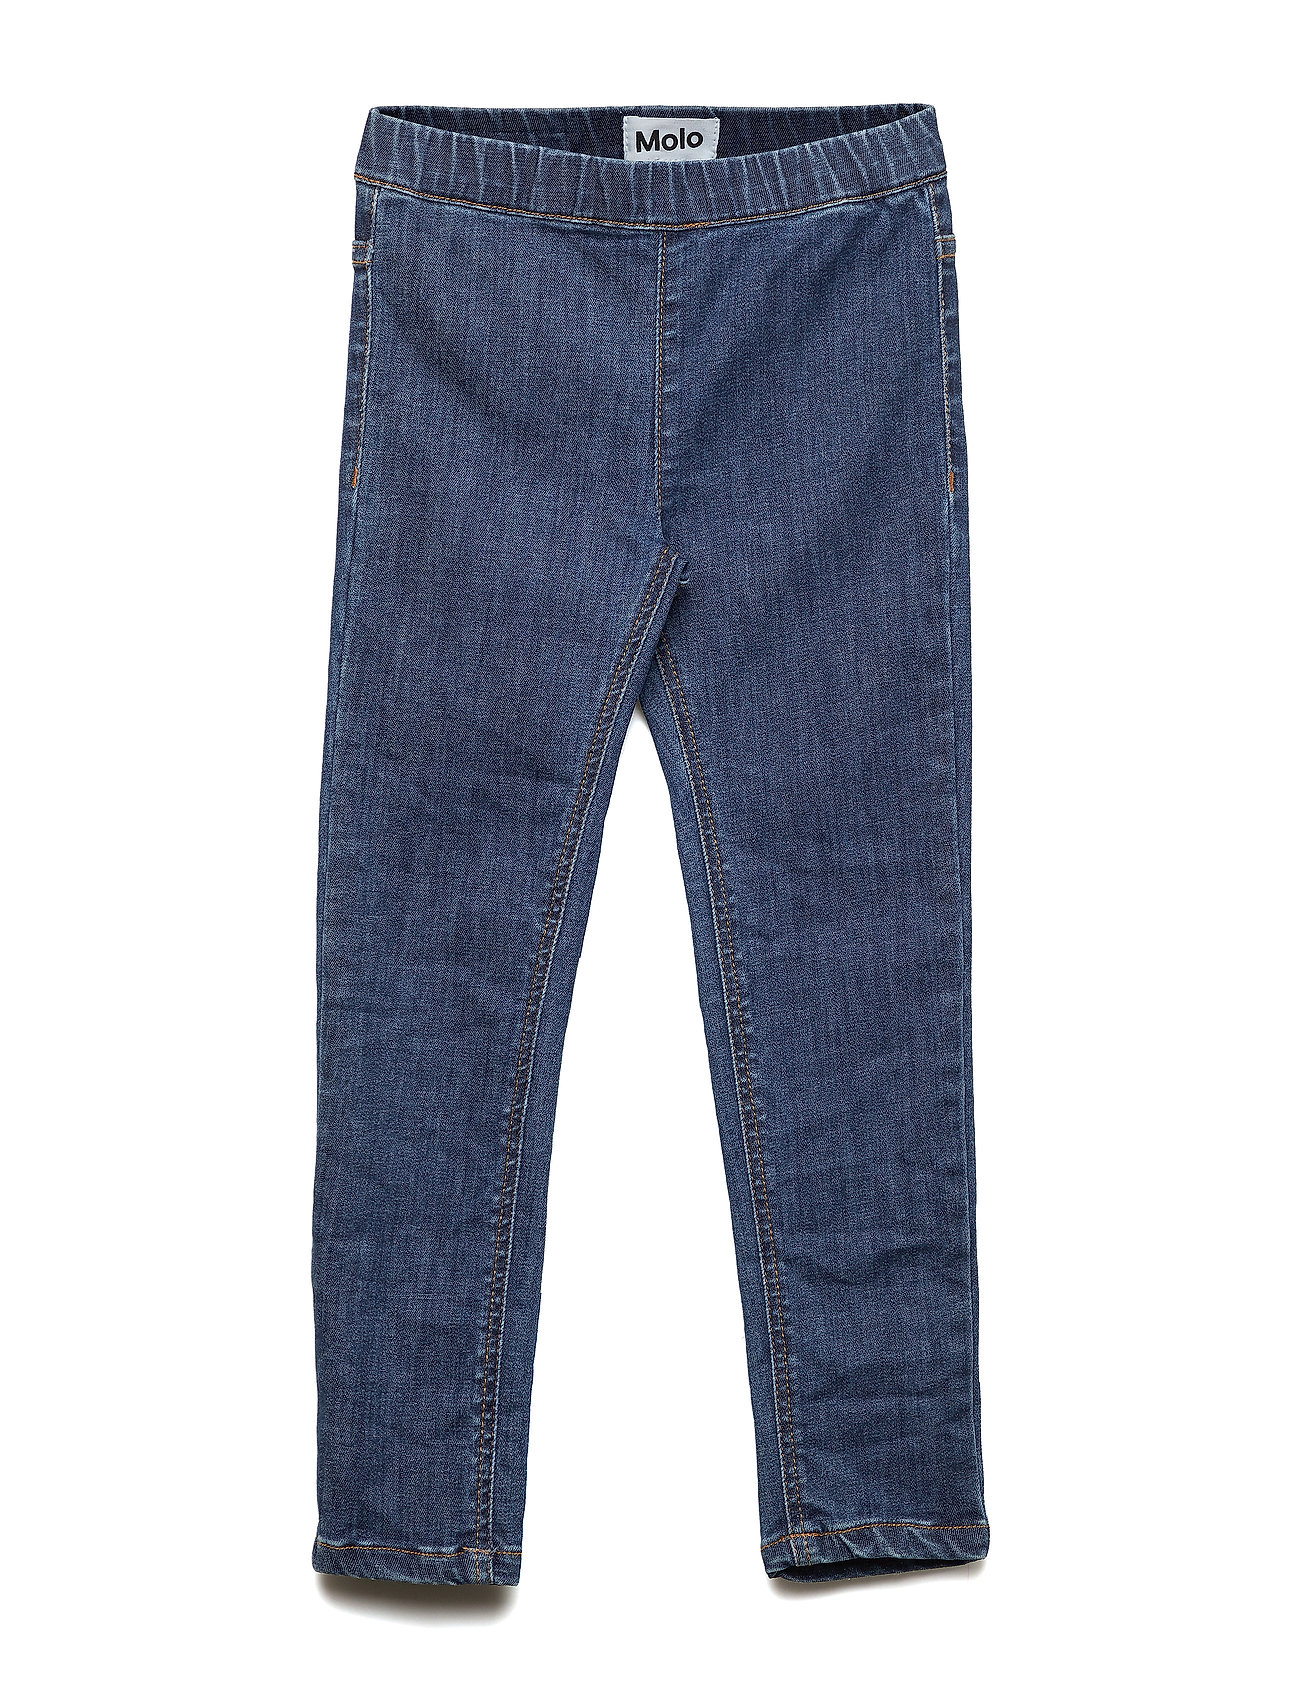 Molo April - WASHED BLUE DENIM